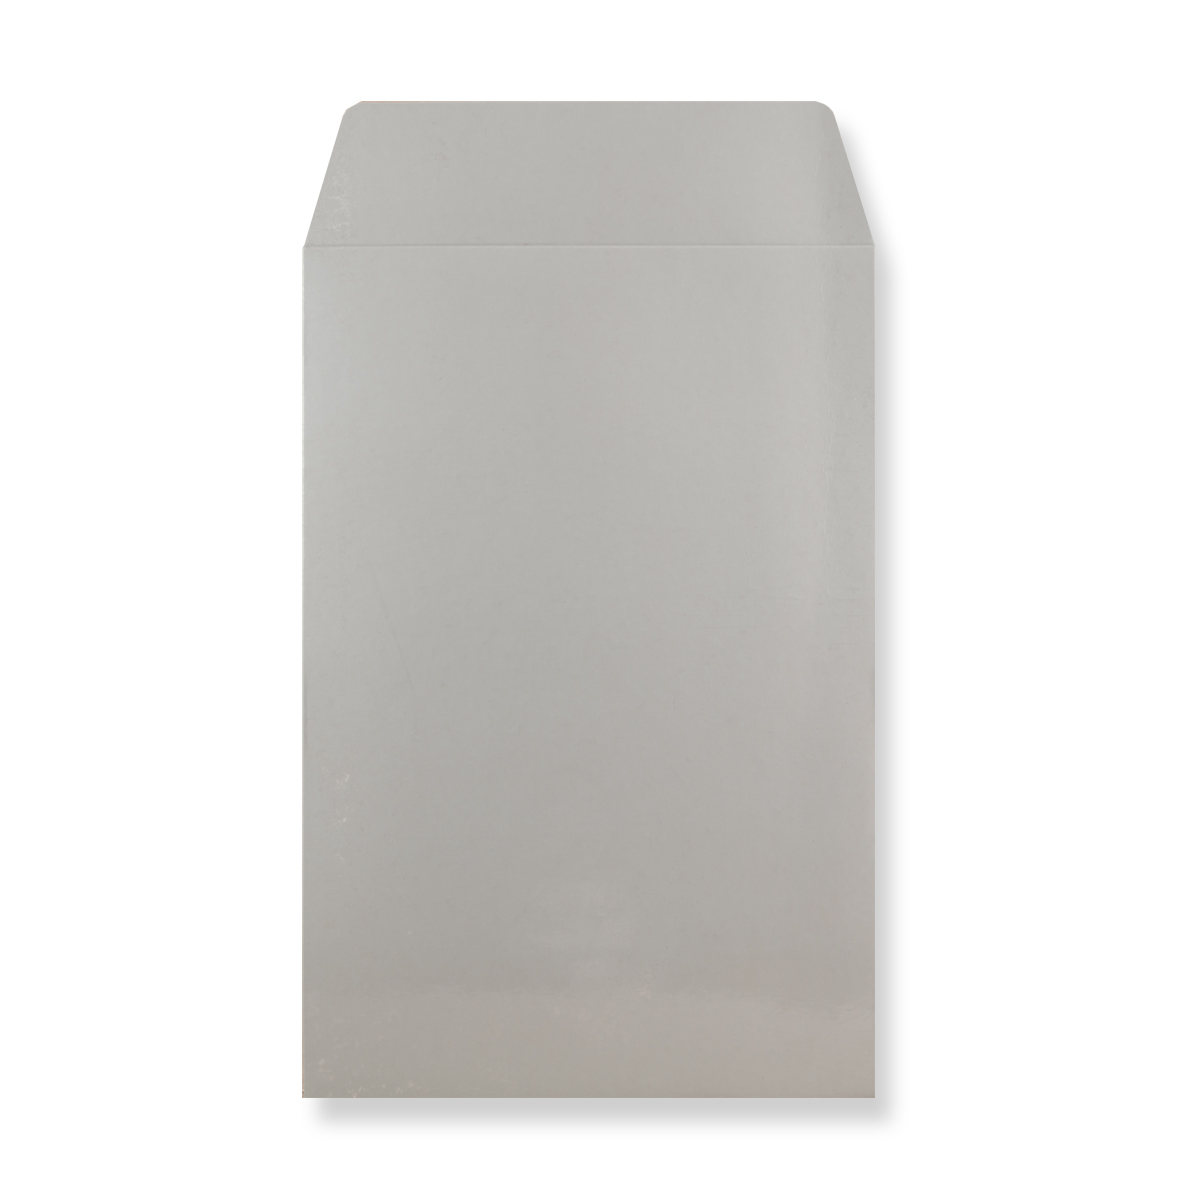 C5 SILVER ALL BOARD ENVELOPES